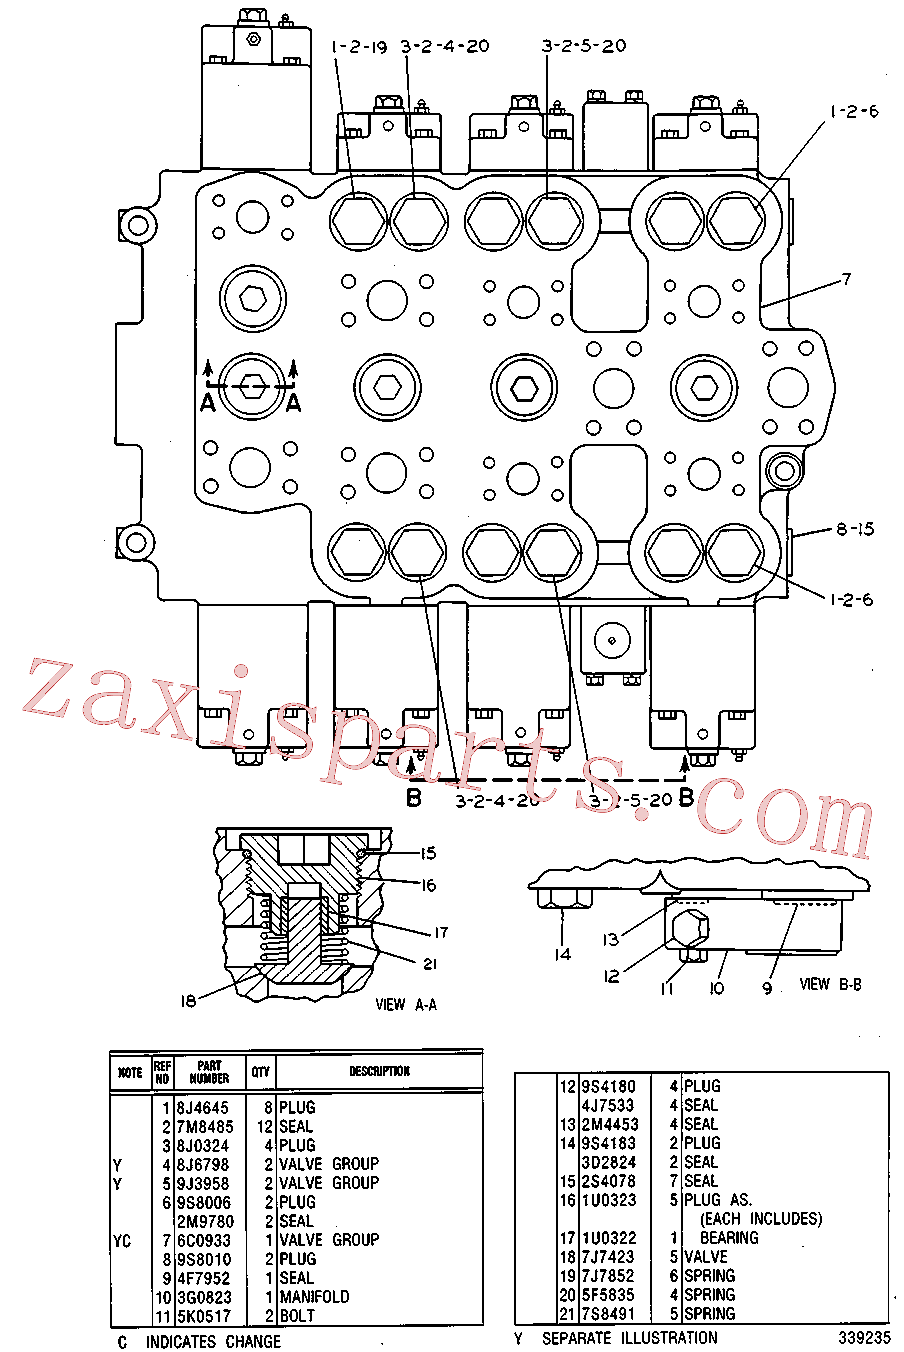 CAT 8J-5947 for 235B Excavator(EXC) hydraulic system 5C-6637 Assembly